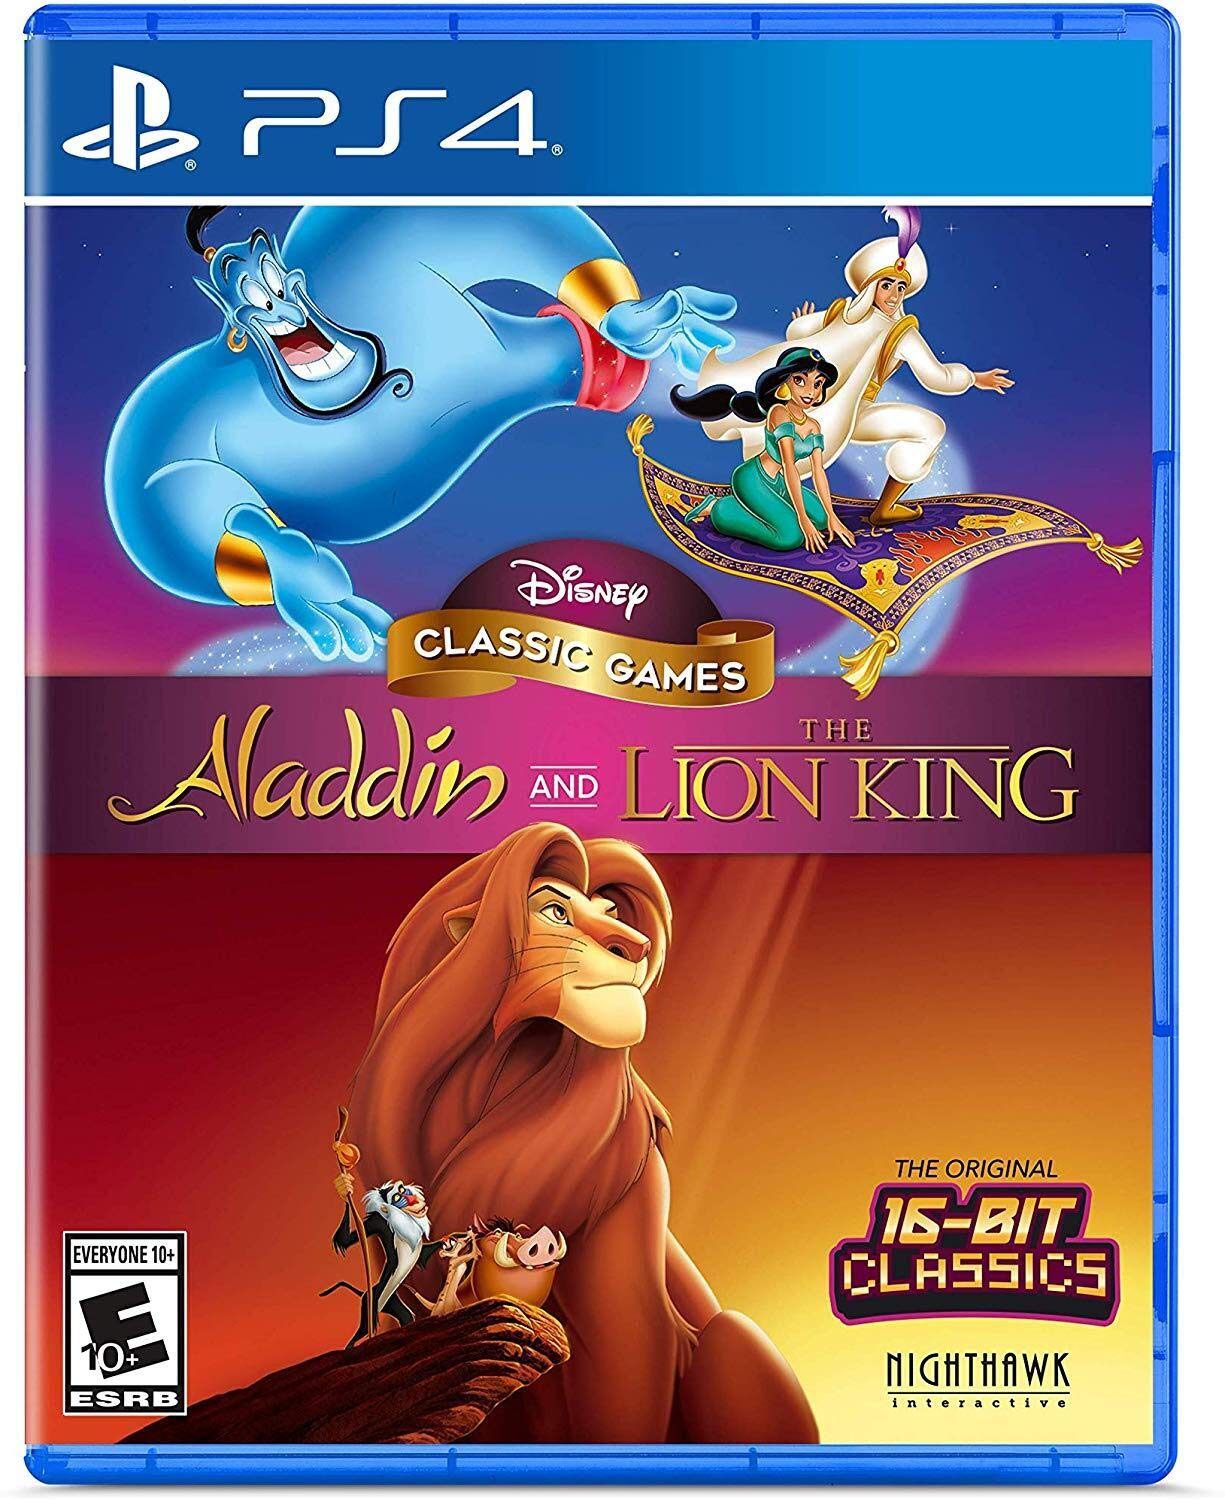 Disney Classic Games: Aladdin and The Lion King - PlayStation 4